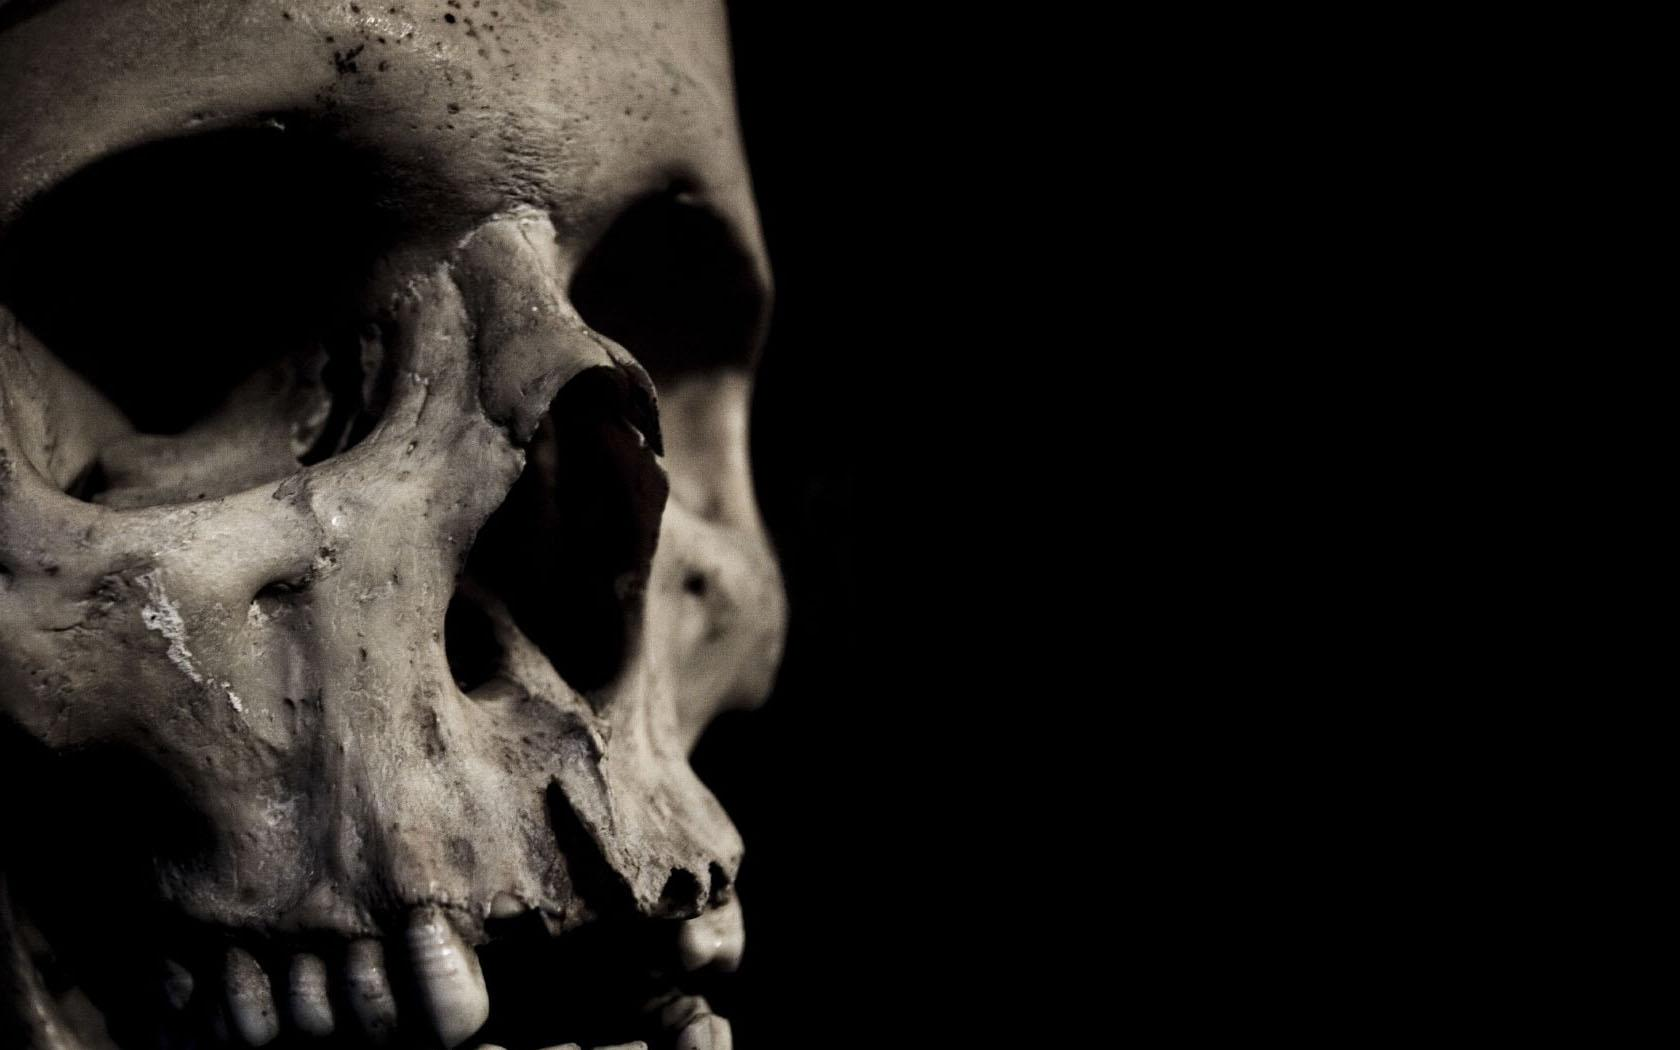 skull, background, texture, photo, skull texture background